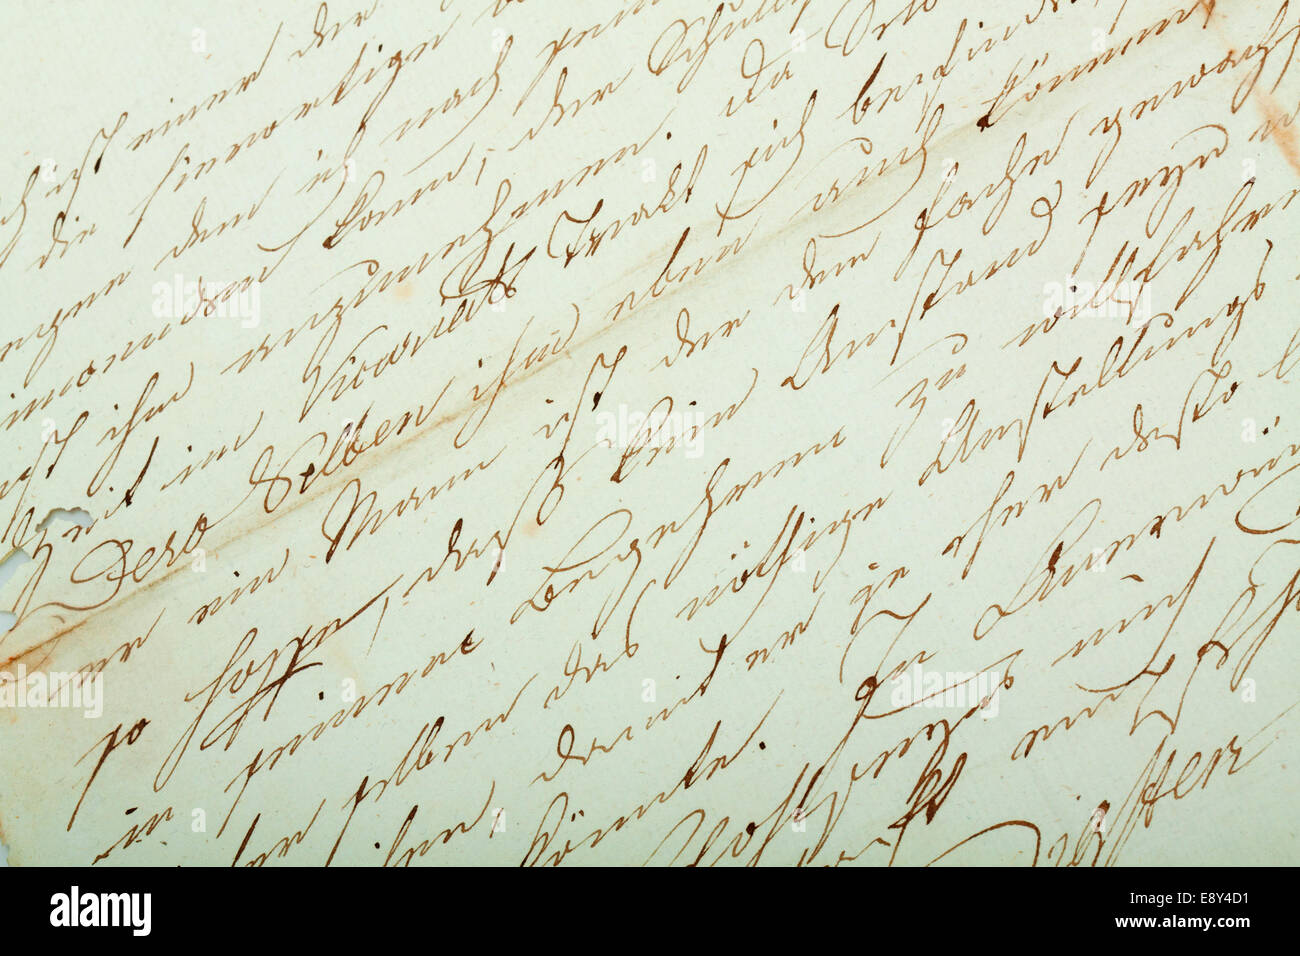 Hand writing on very old paper - Stock Image